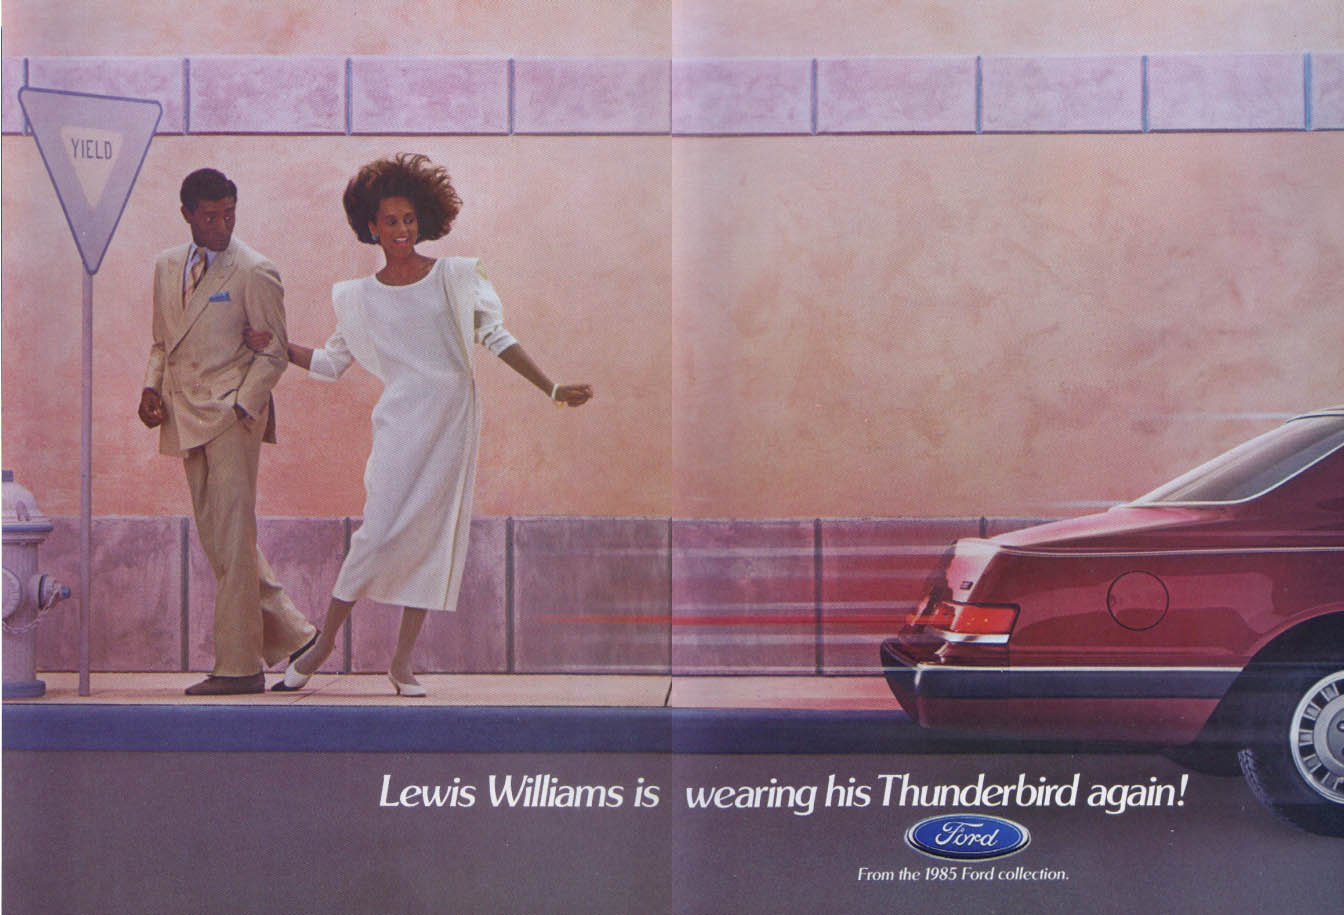 Image for Ford Thunderbird Lewis Williams wearing again ad 1985